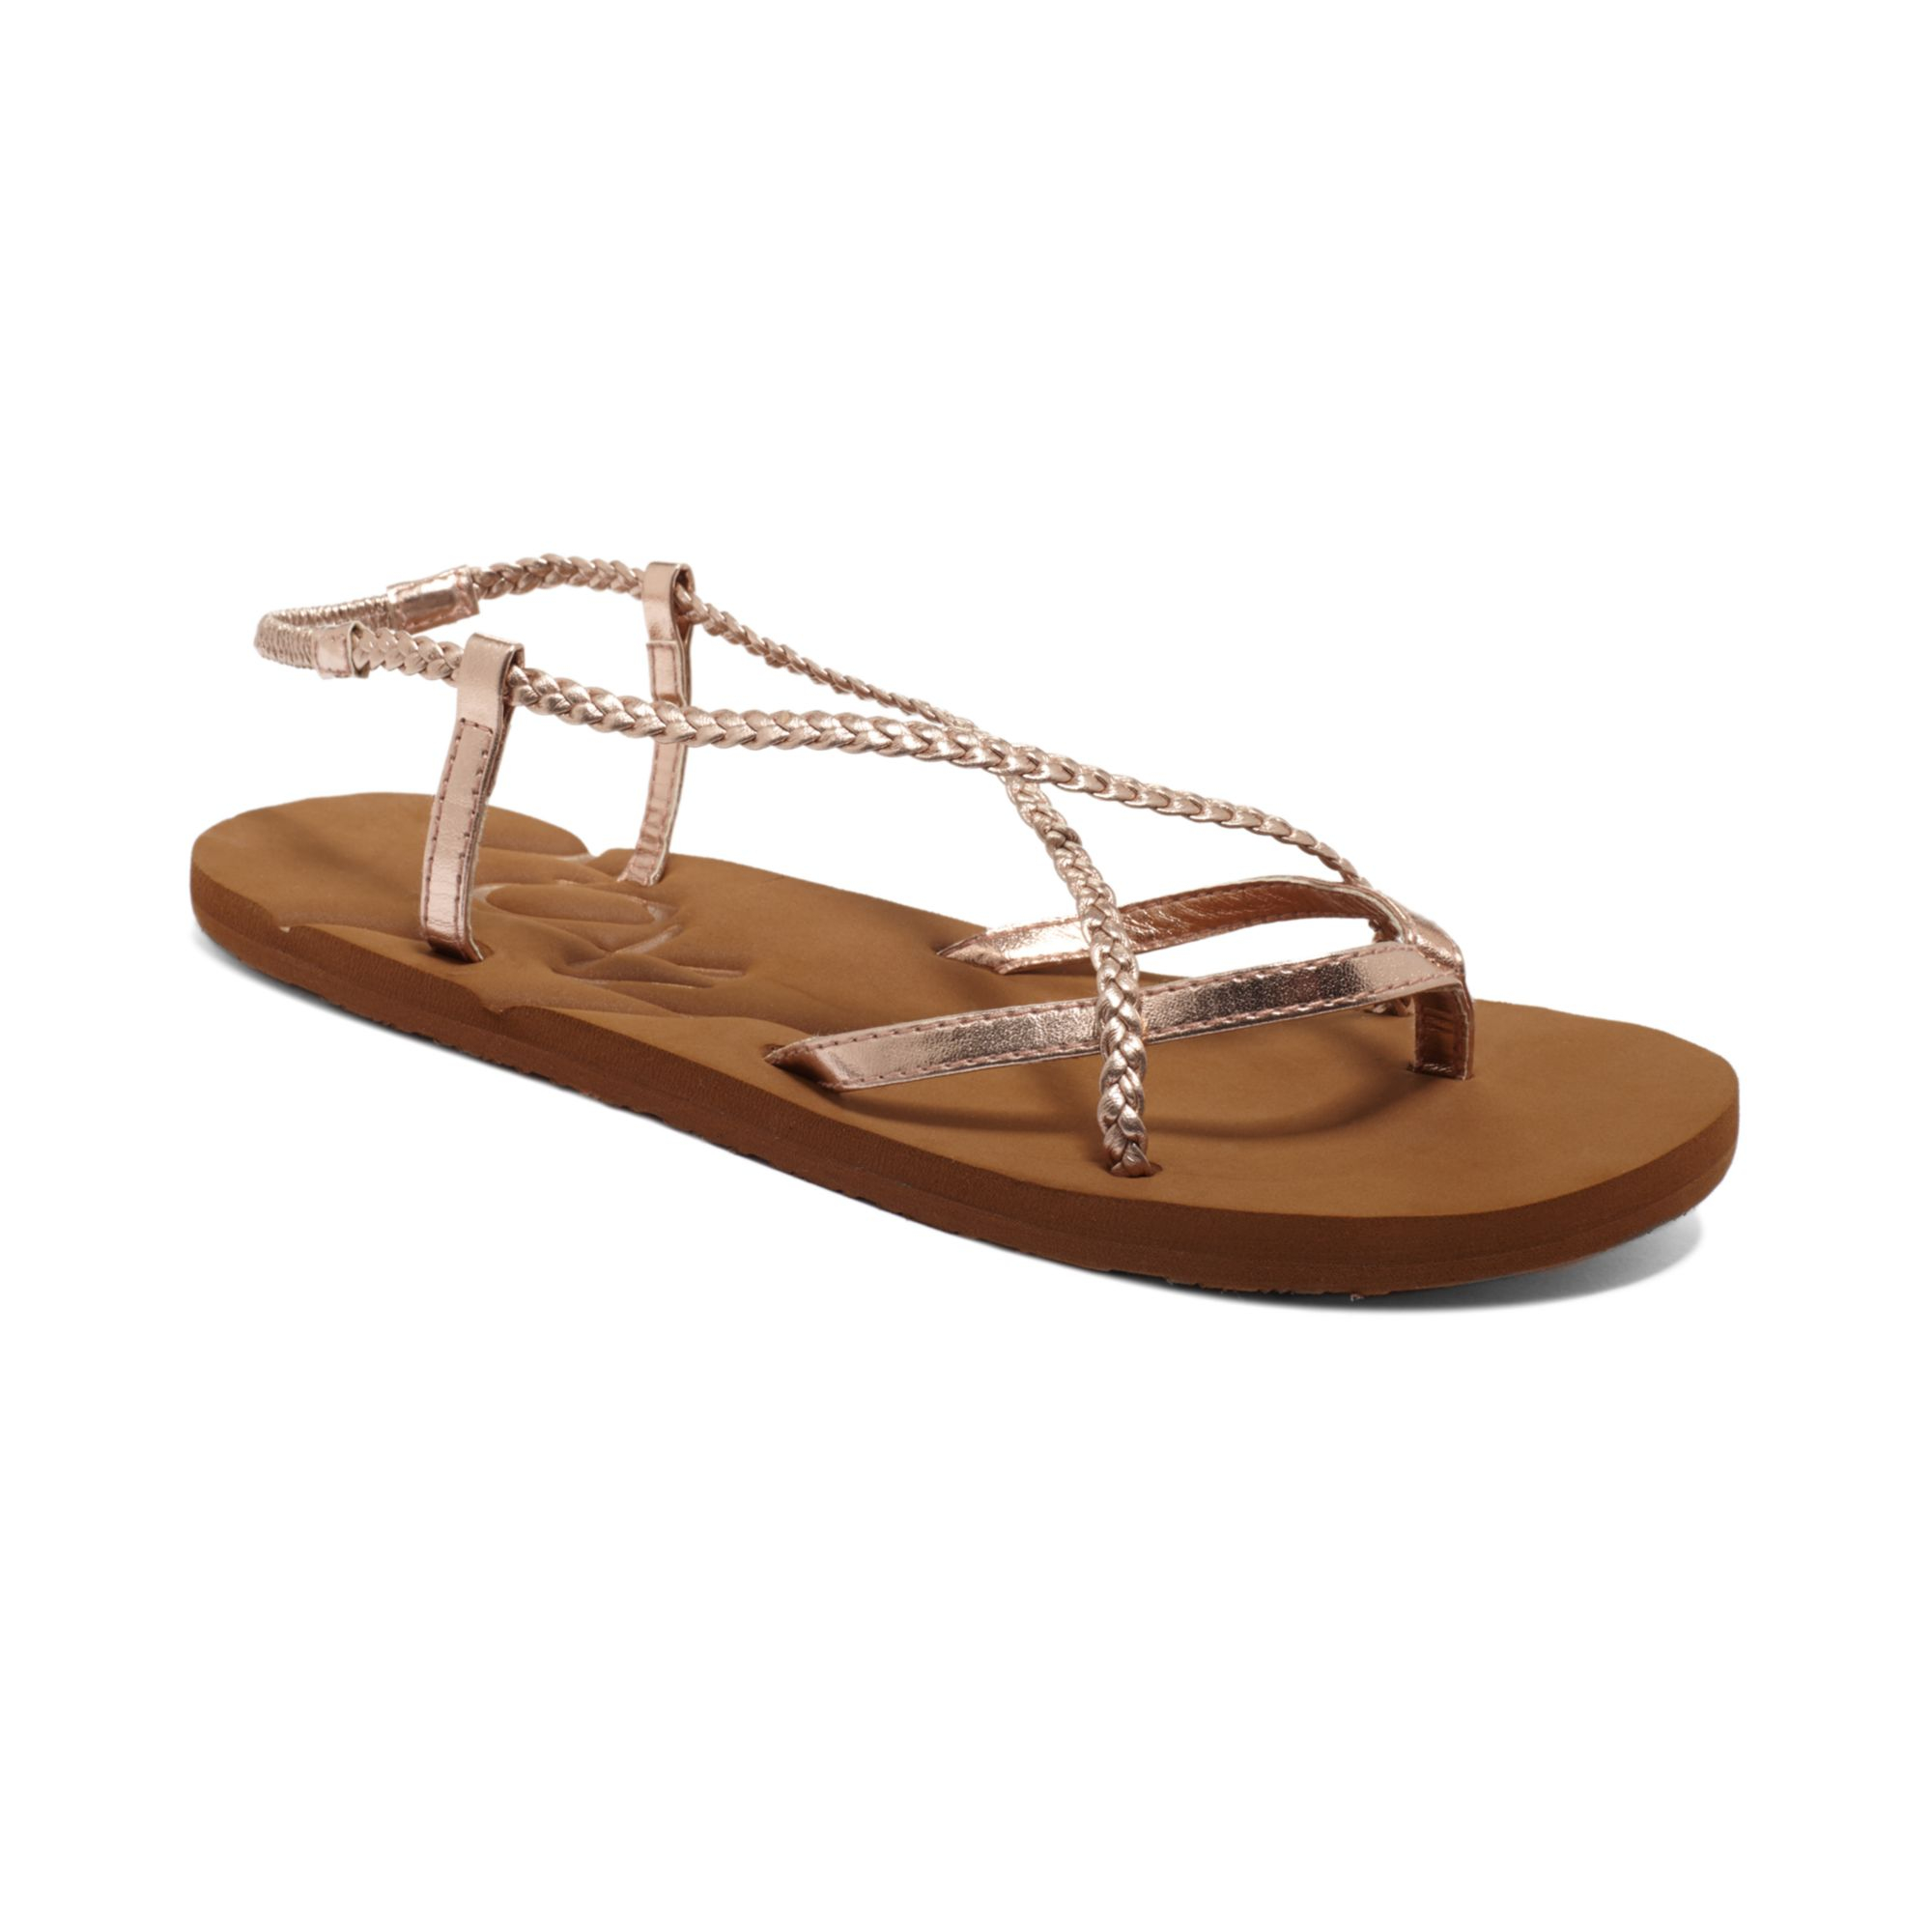 Lyst Roxy Quinta Strappy Flat Sandals In Pink